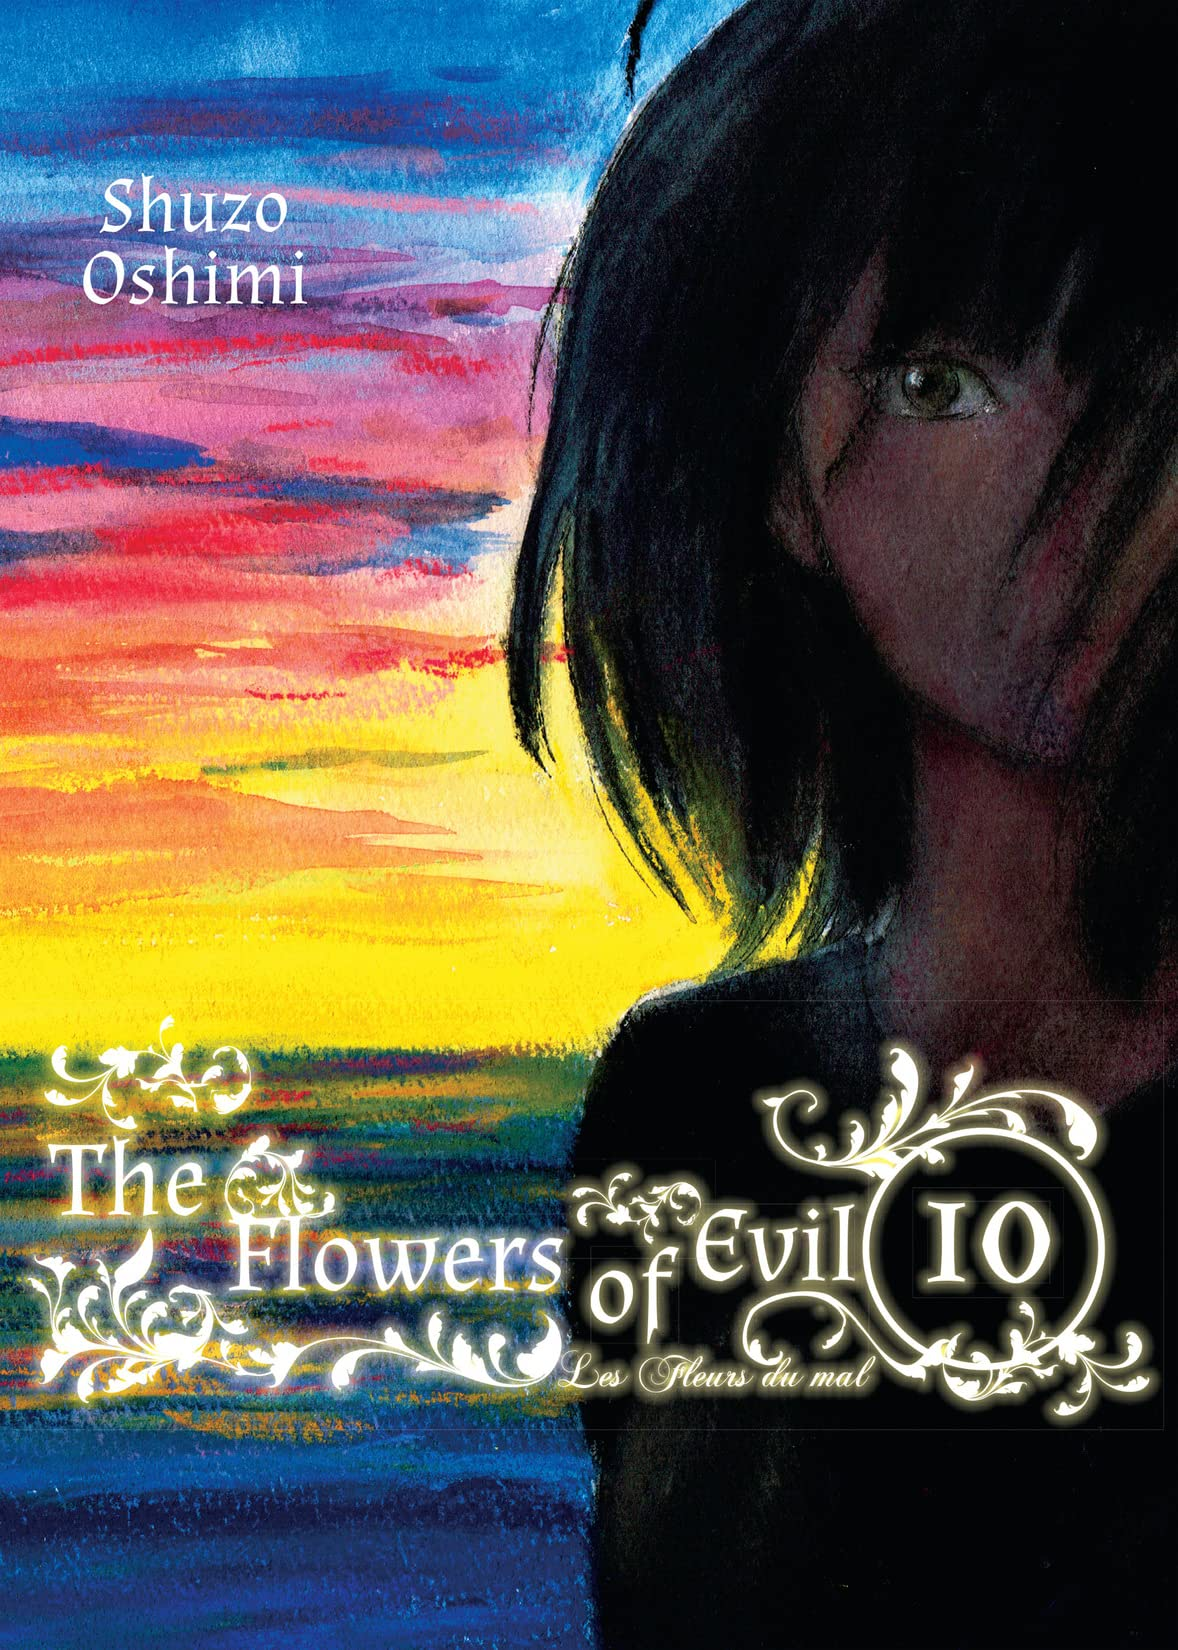 The Flowers of Evil Vol. 10